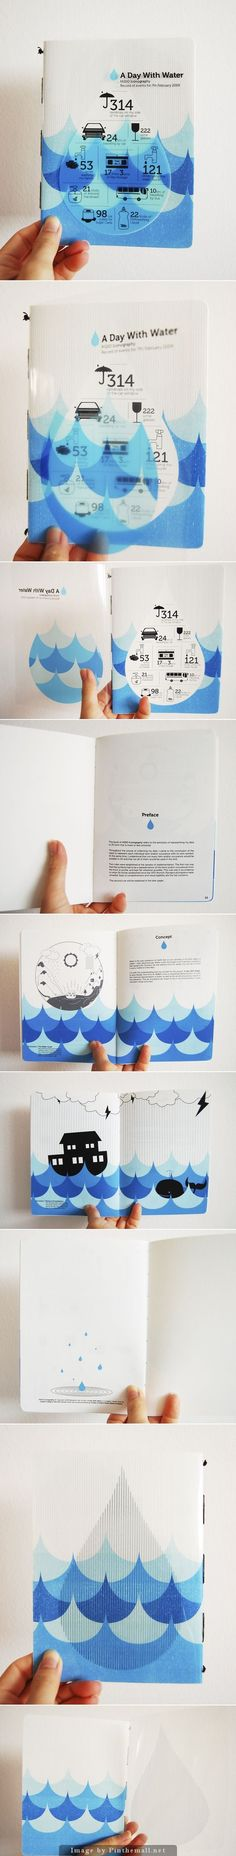 this book with the simple visual narrative idea. the book use blue drawing with the sea wave shape and water drop idea through the whole book. as image show we can see the water idea using in each page form. the text format with sort column placement on the empty white space to make the graphic and text balance. #infographics